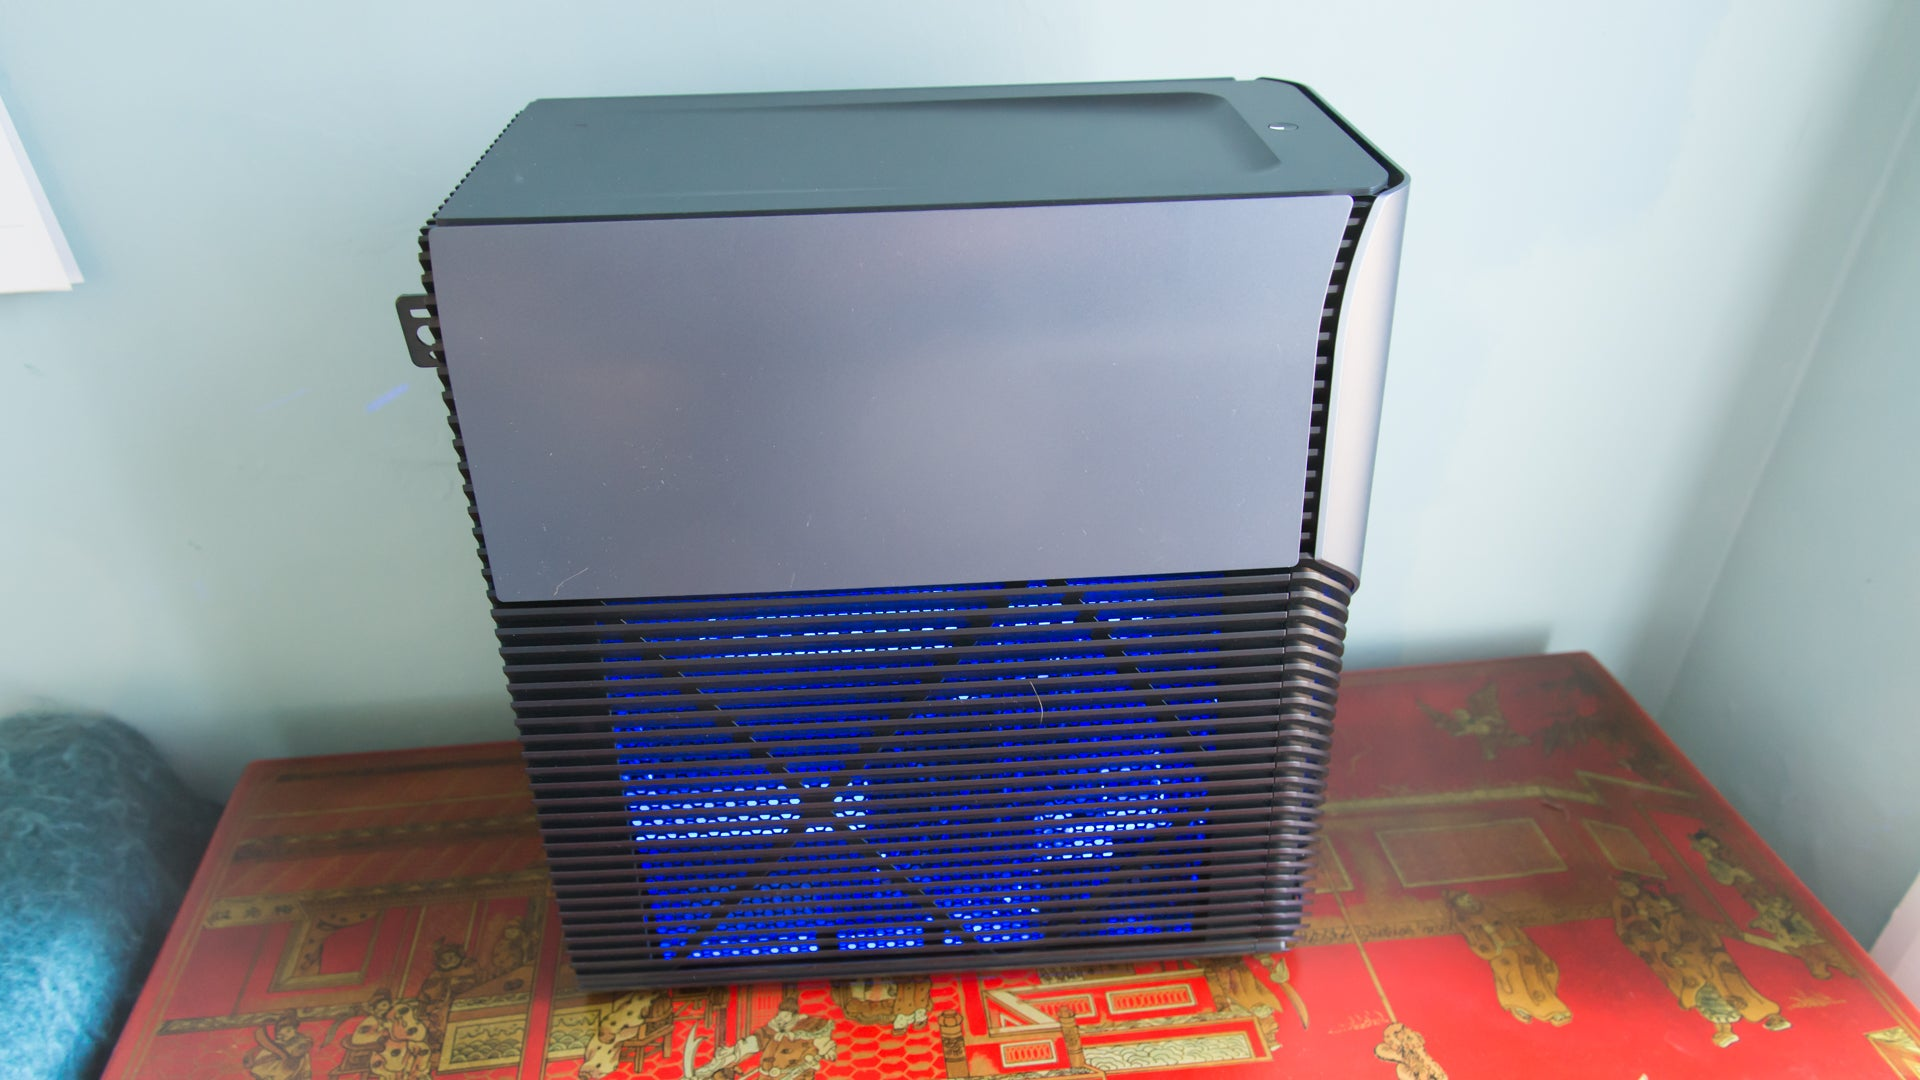 Dell Inspiron Gaming Desktop Review | Trusted Reviews